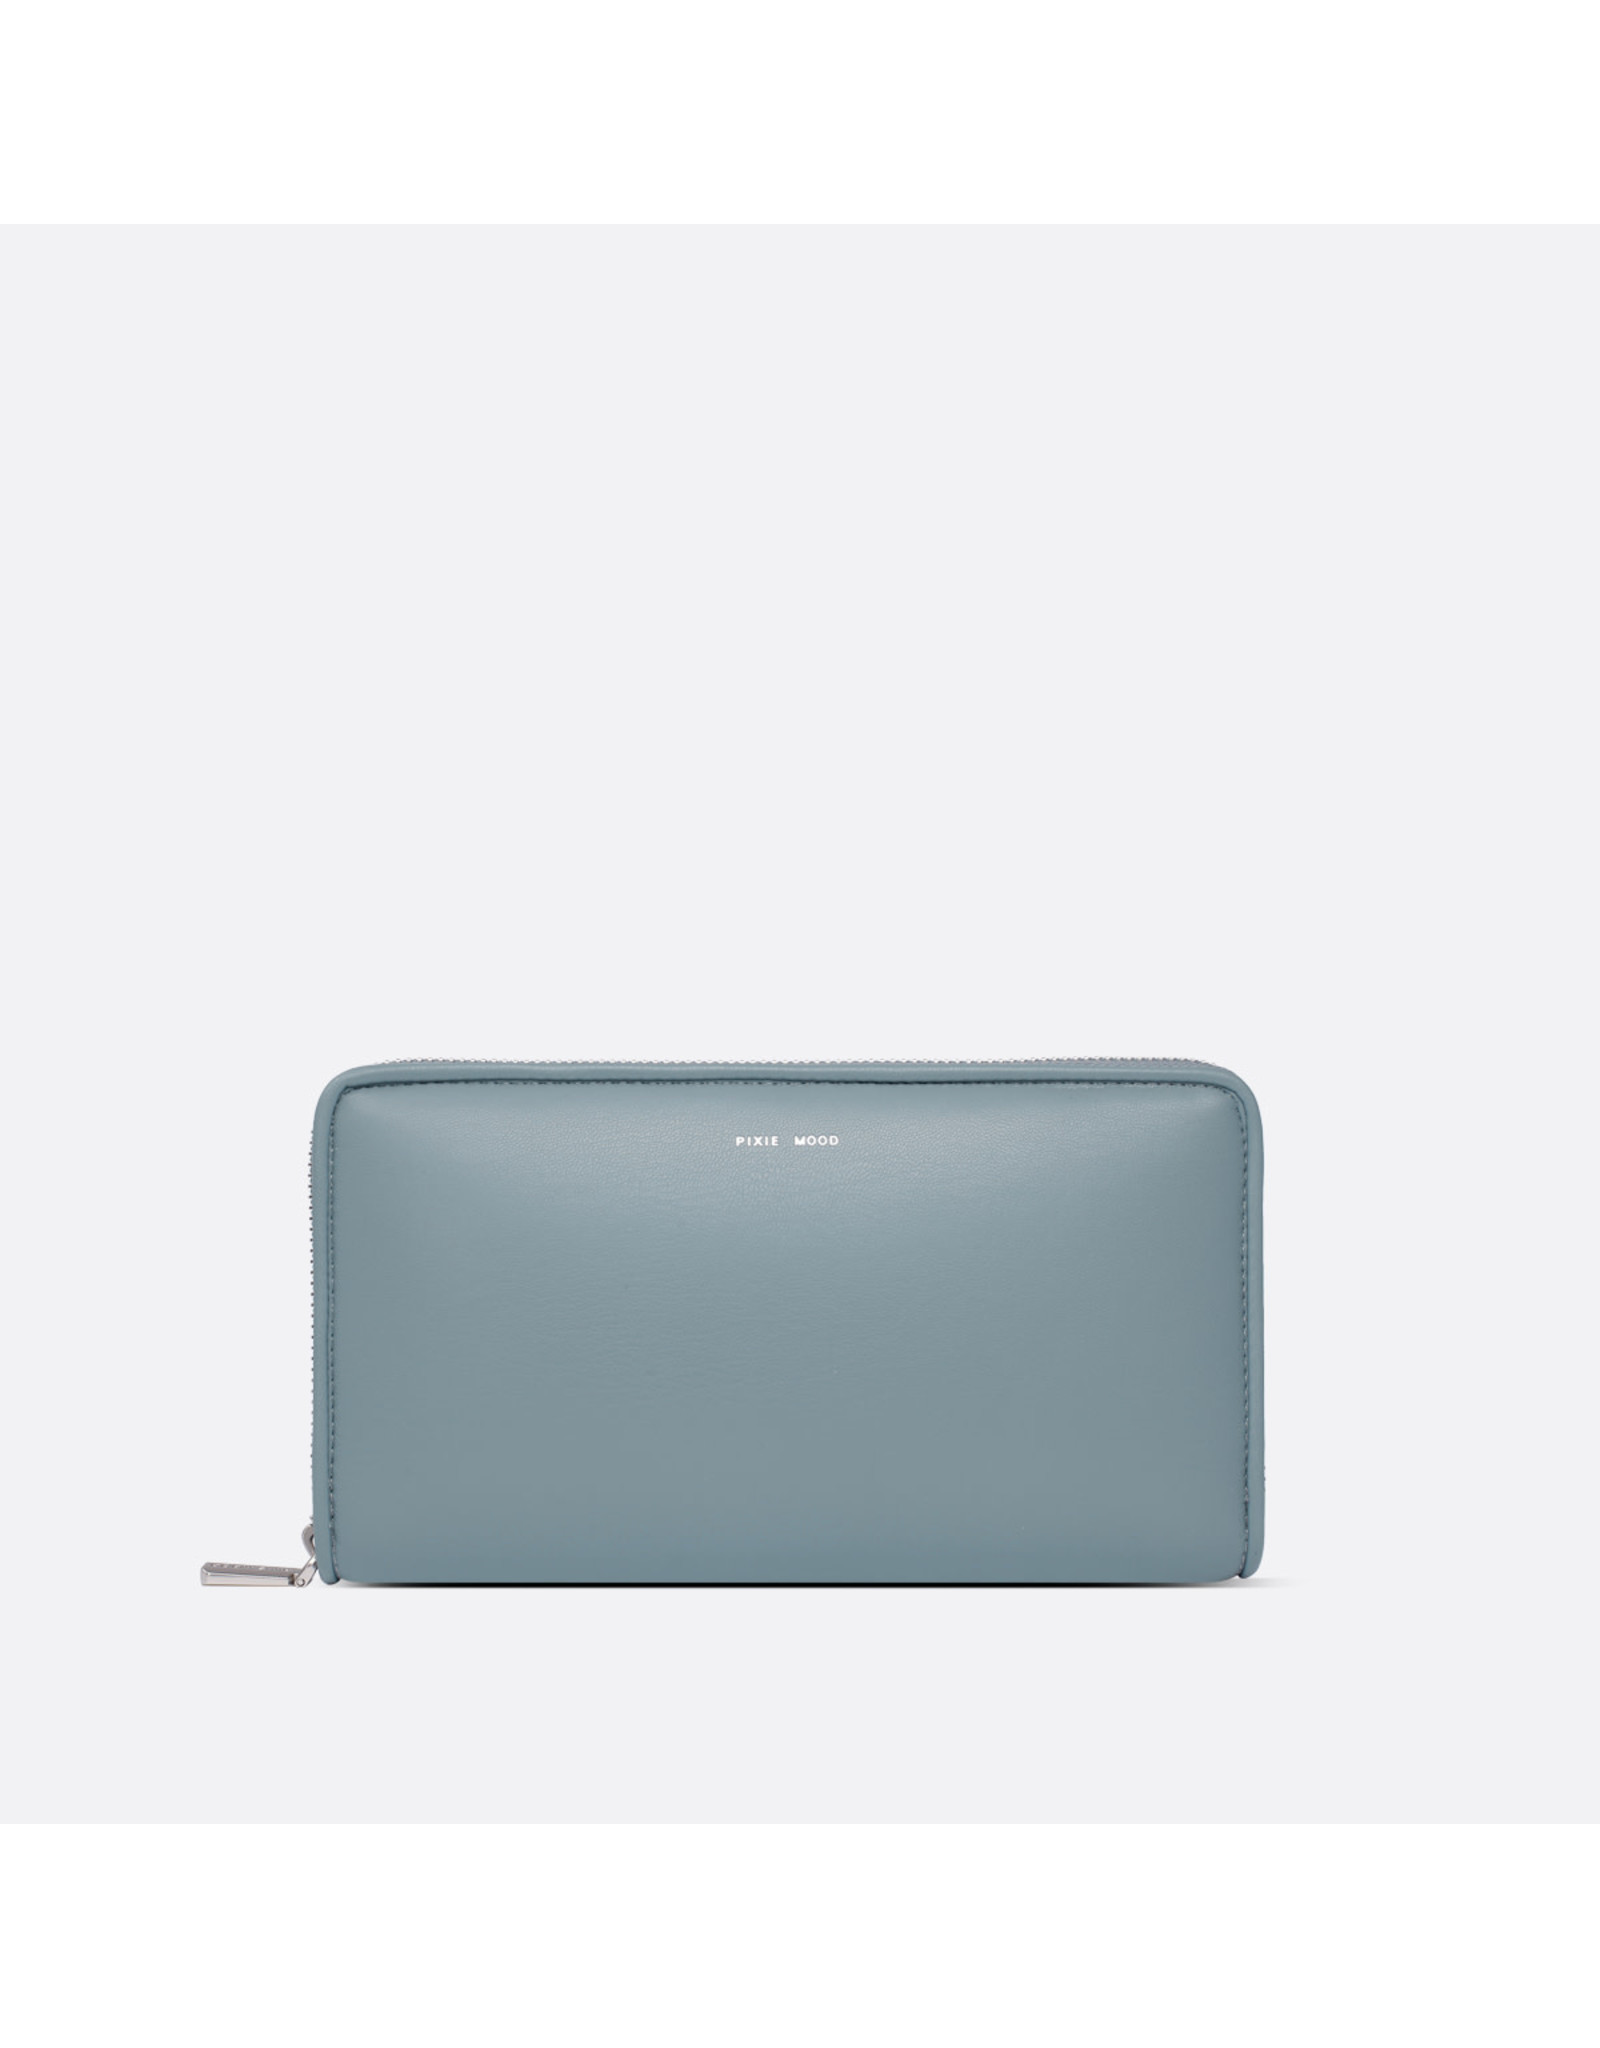 Pixie Mood - Wallet Bubbly Mineral Blue